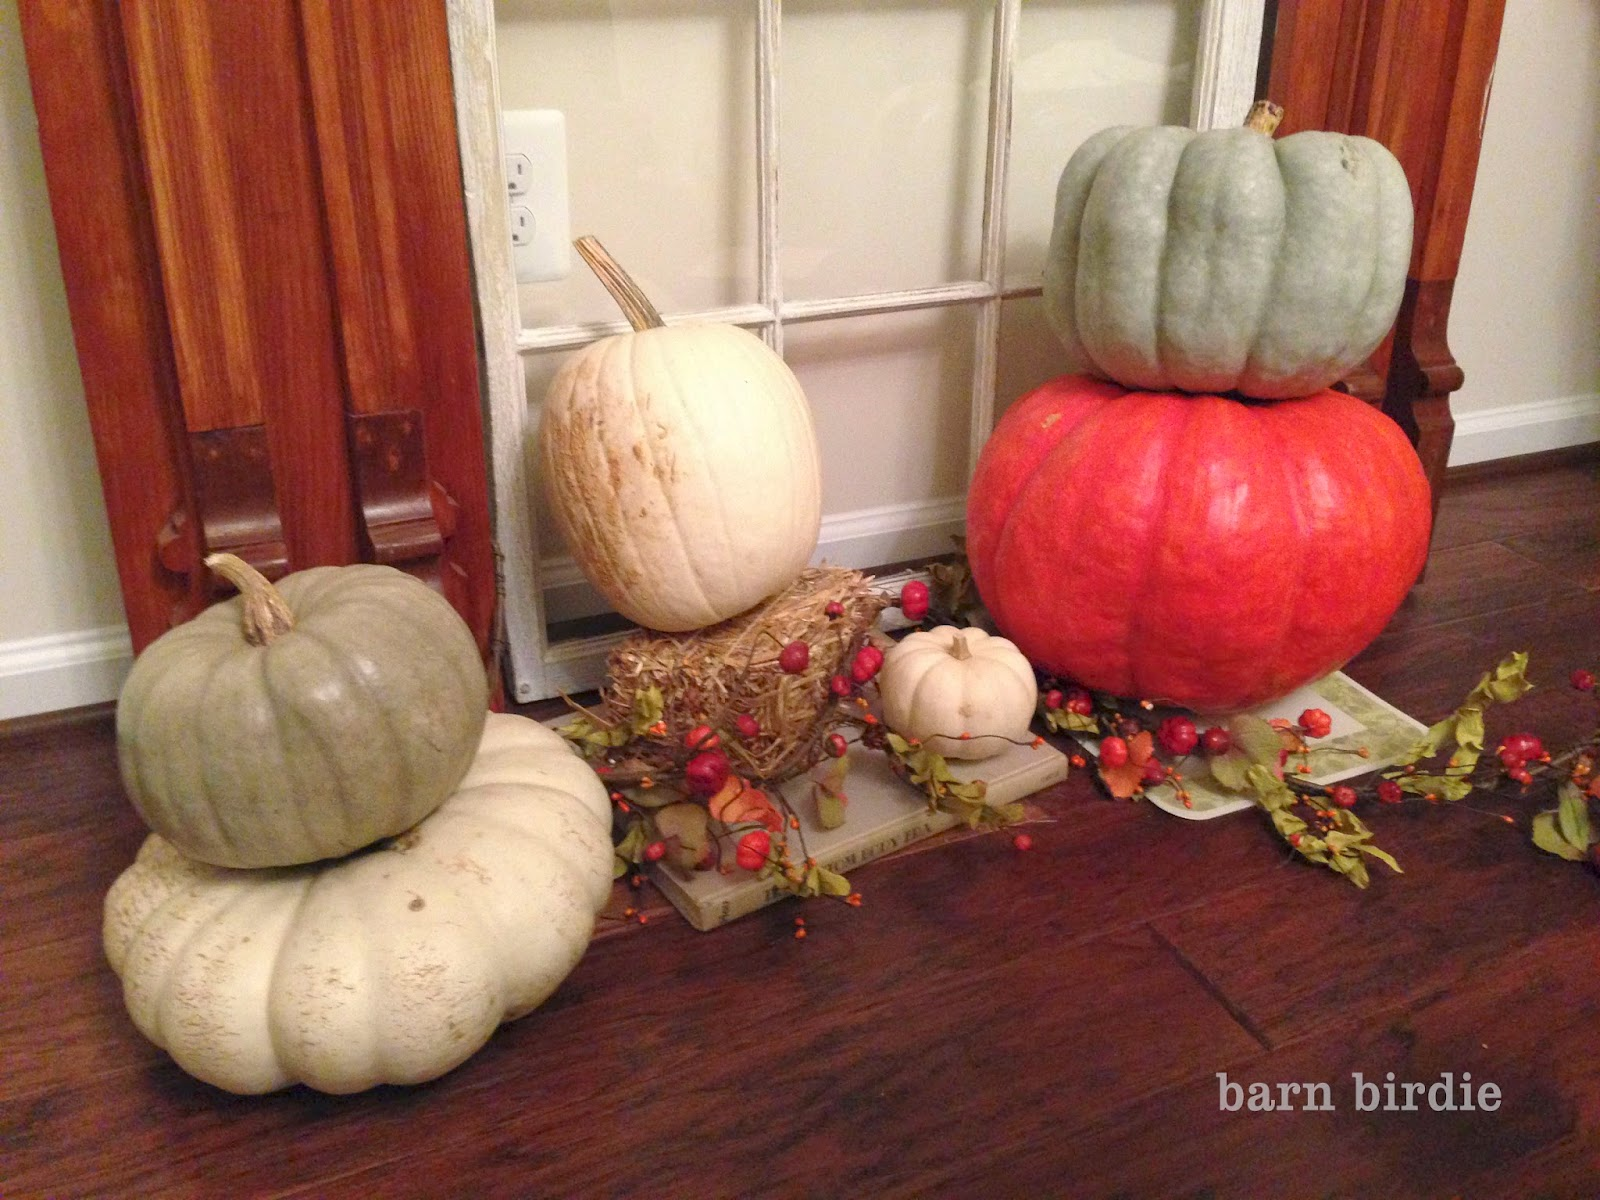 barn birdie | Upcycle your pumpkins for the Holidays!